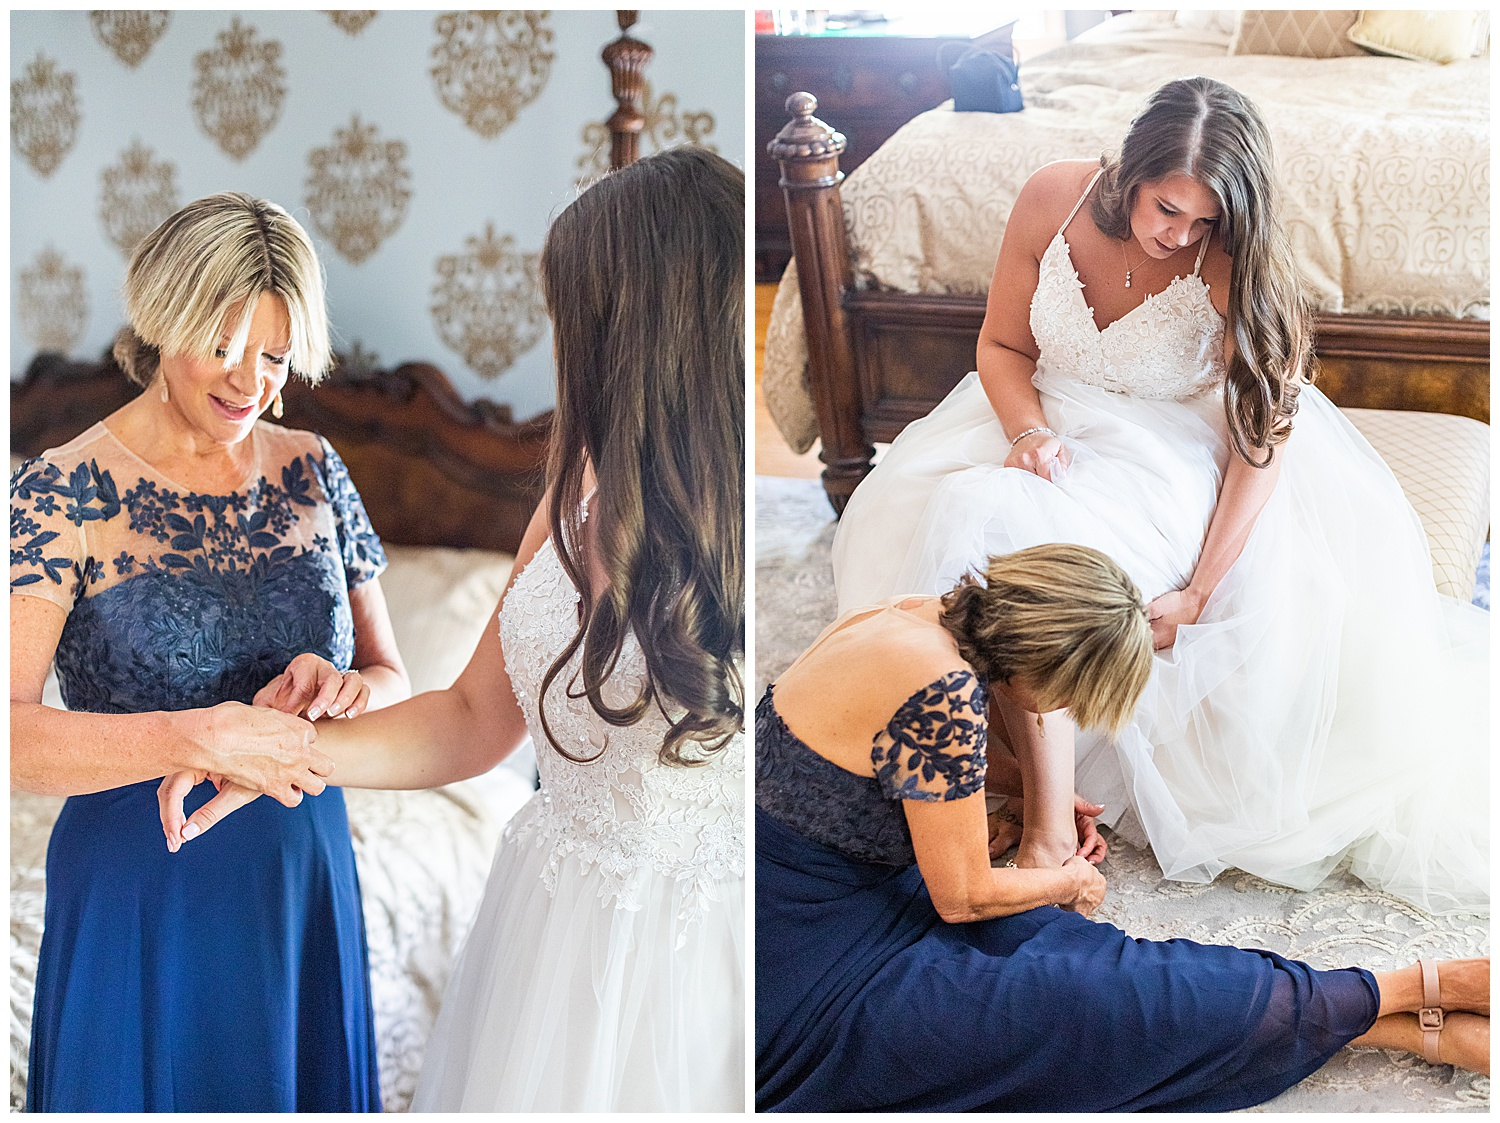 Brittany + Darryl Linwood Estate Wedding Living Radiant Photography photos_0020.jpg